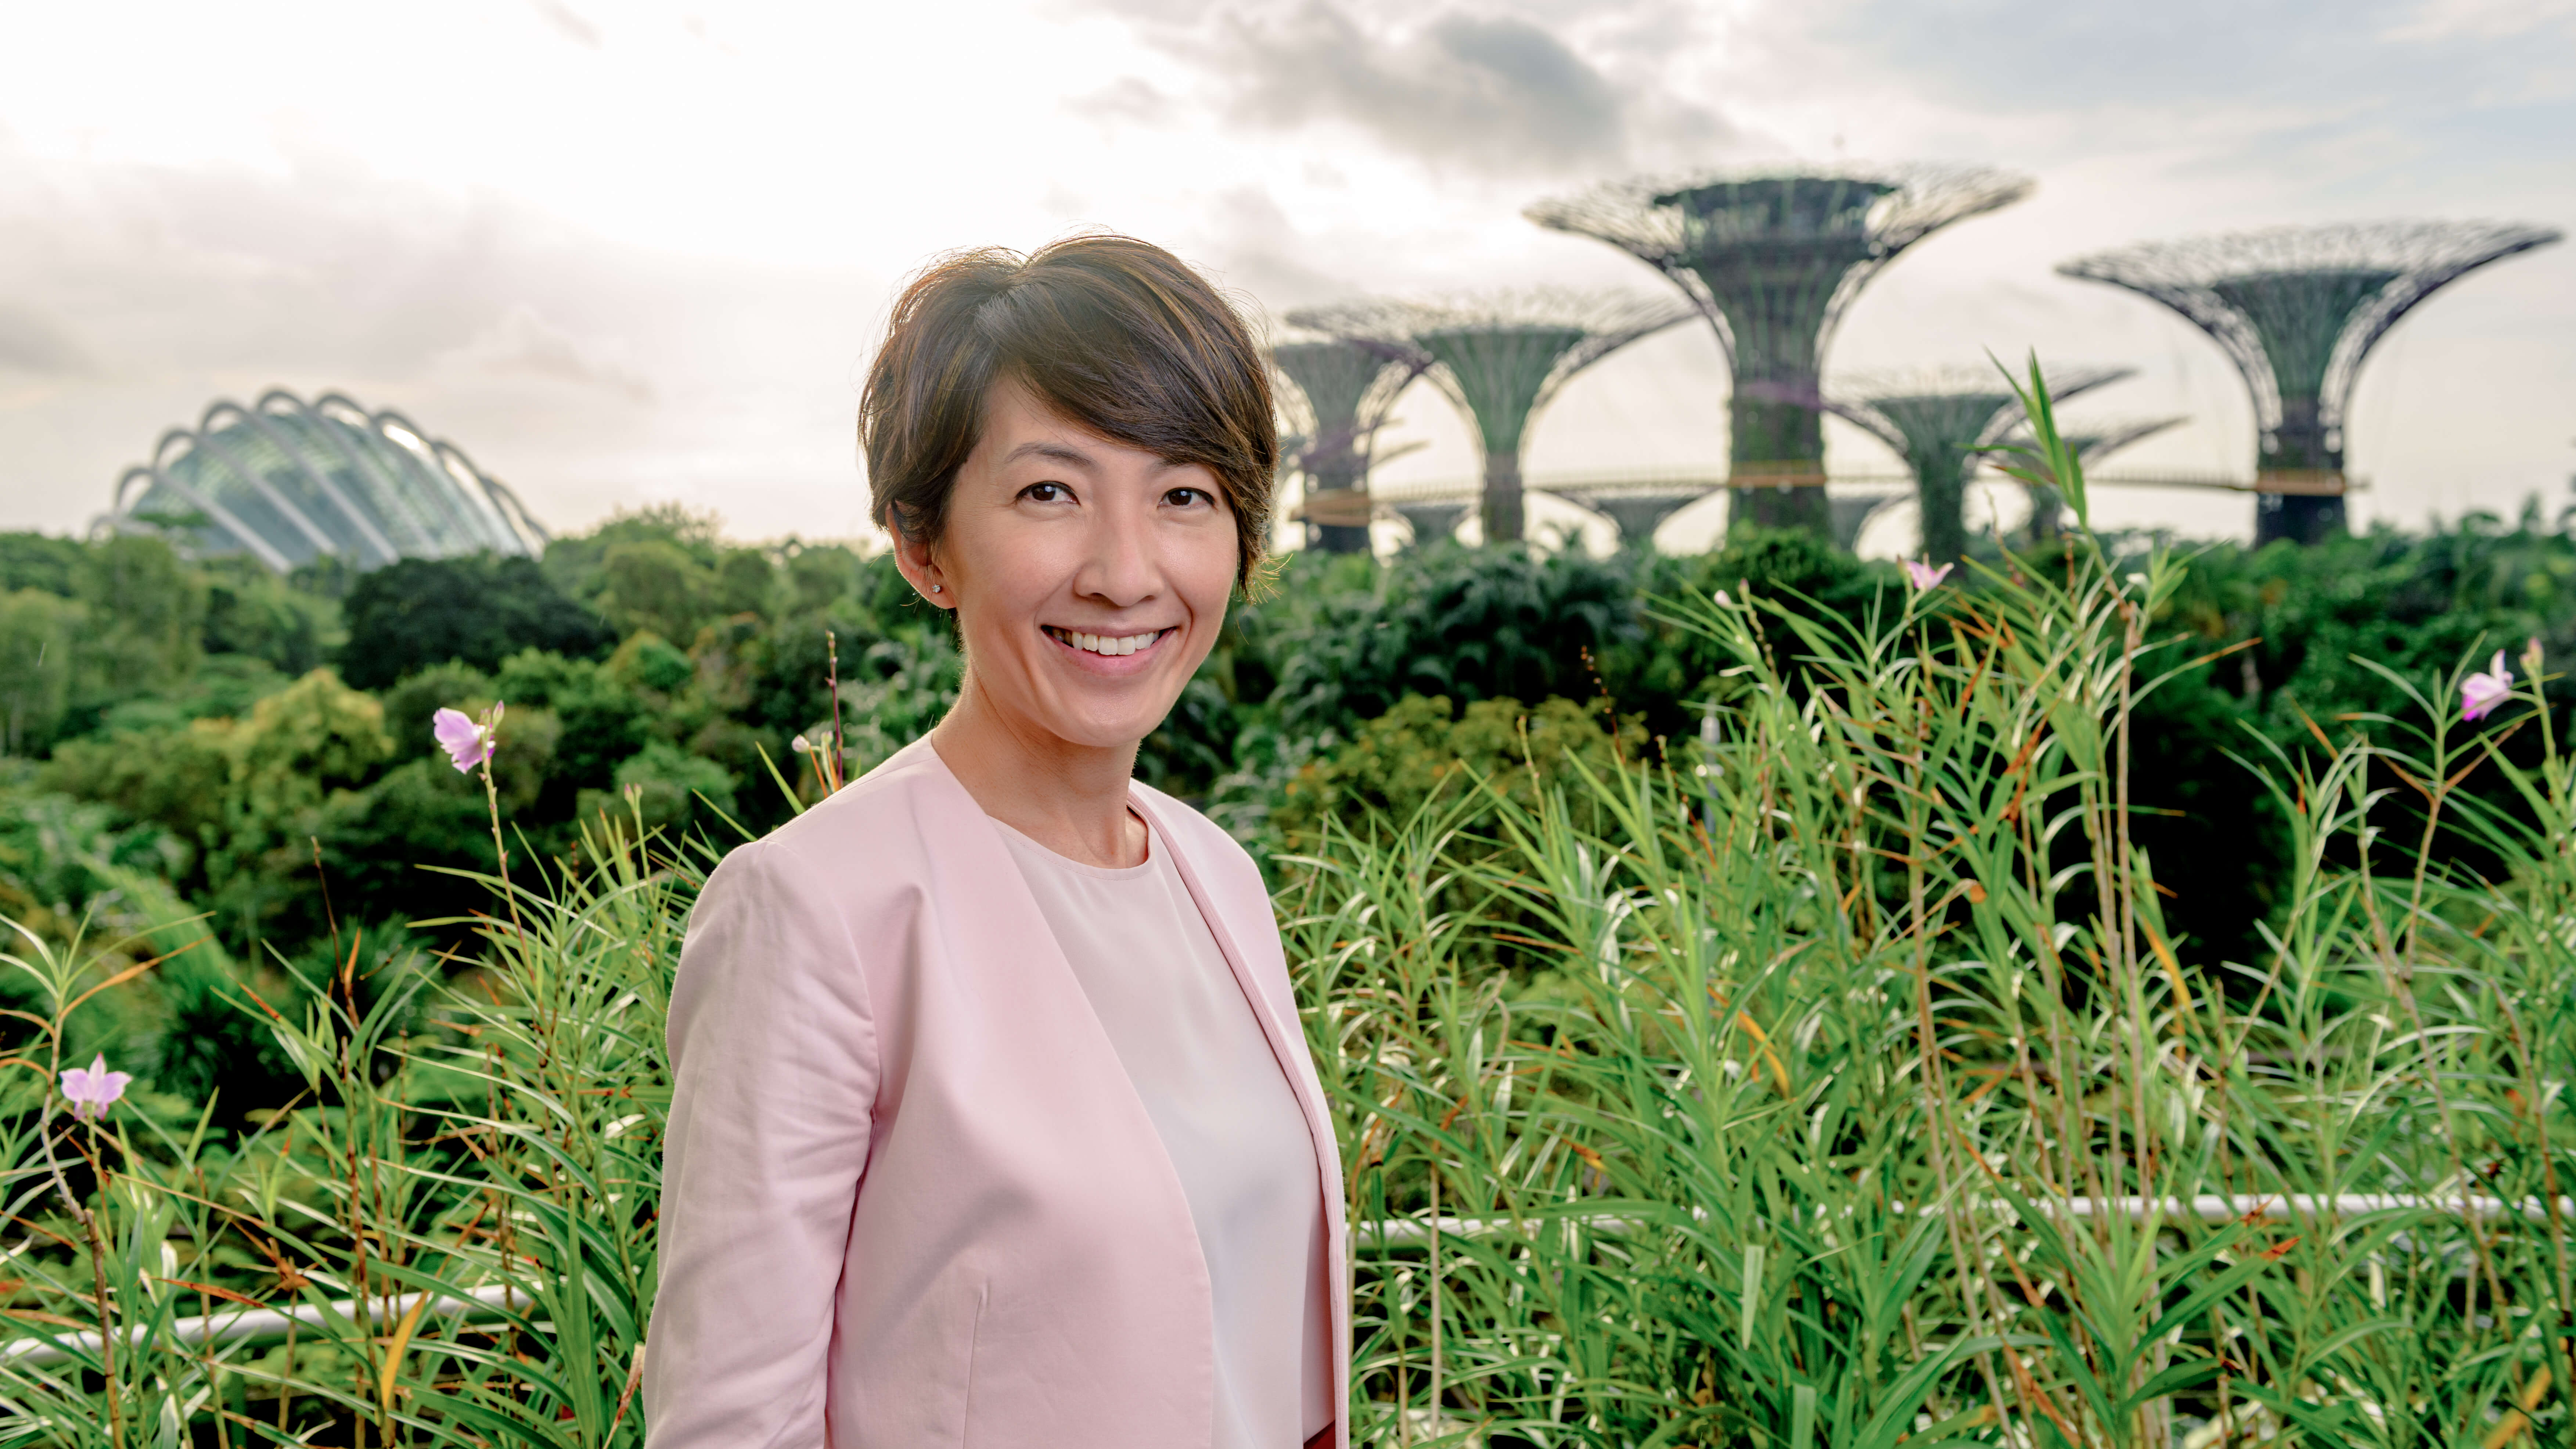 Music: The degree to break glass ceilings in Singapore